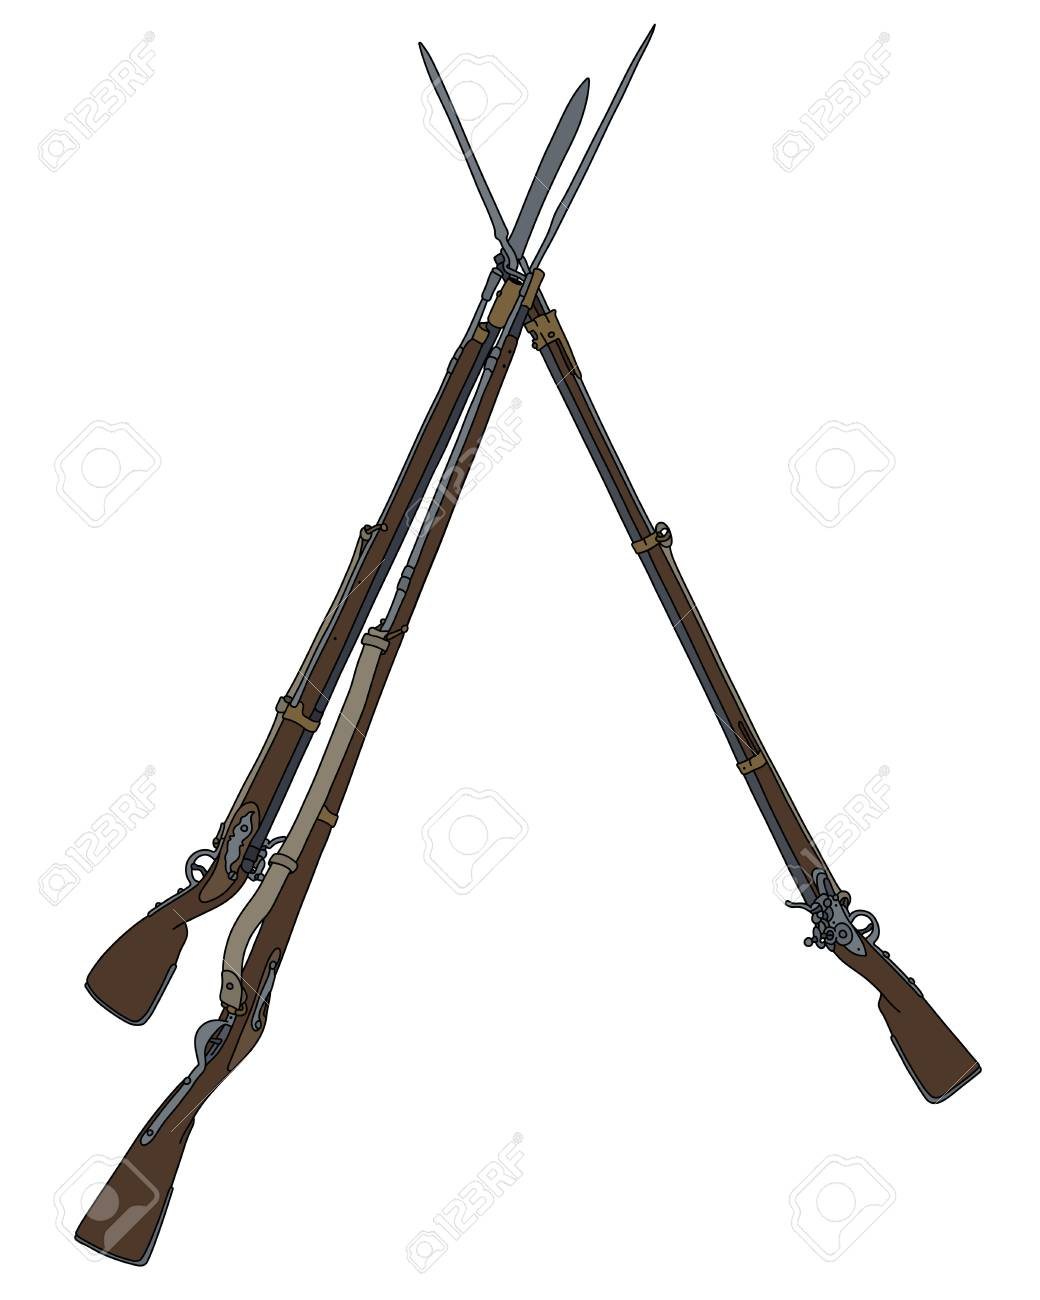 vintage military rifles built in the pyramid royalty free cliparts